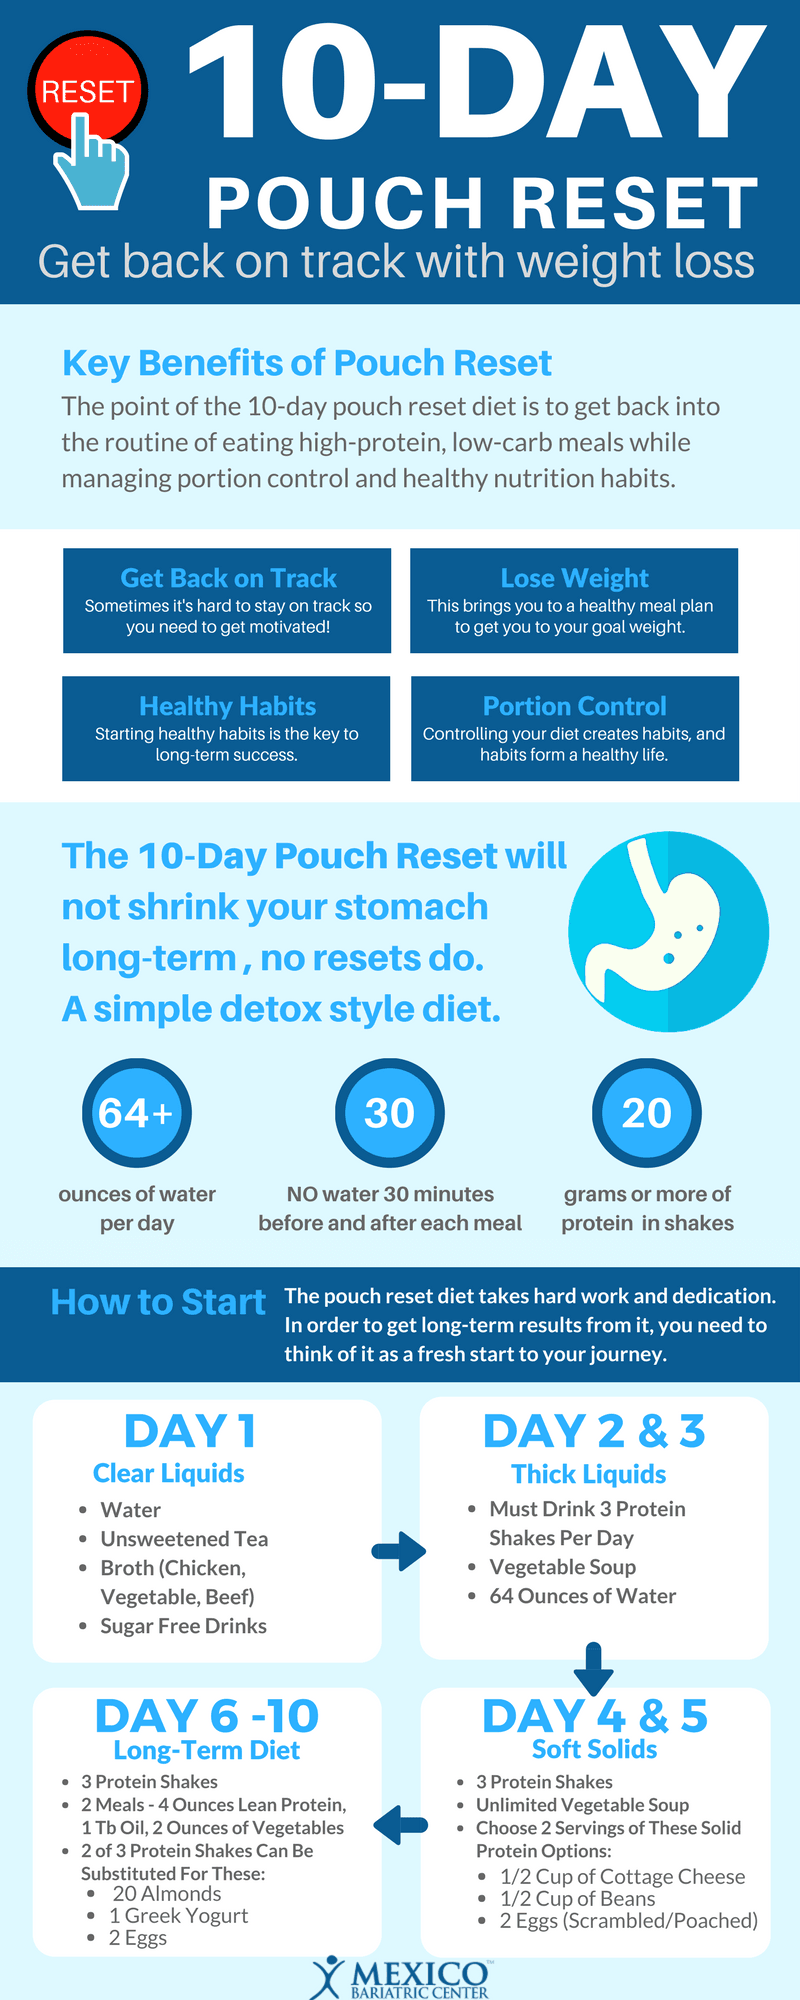 10-Day-Pouch-Reset-Diet-Infographic-Guid